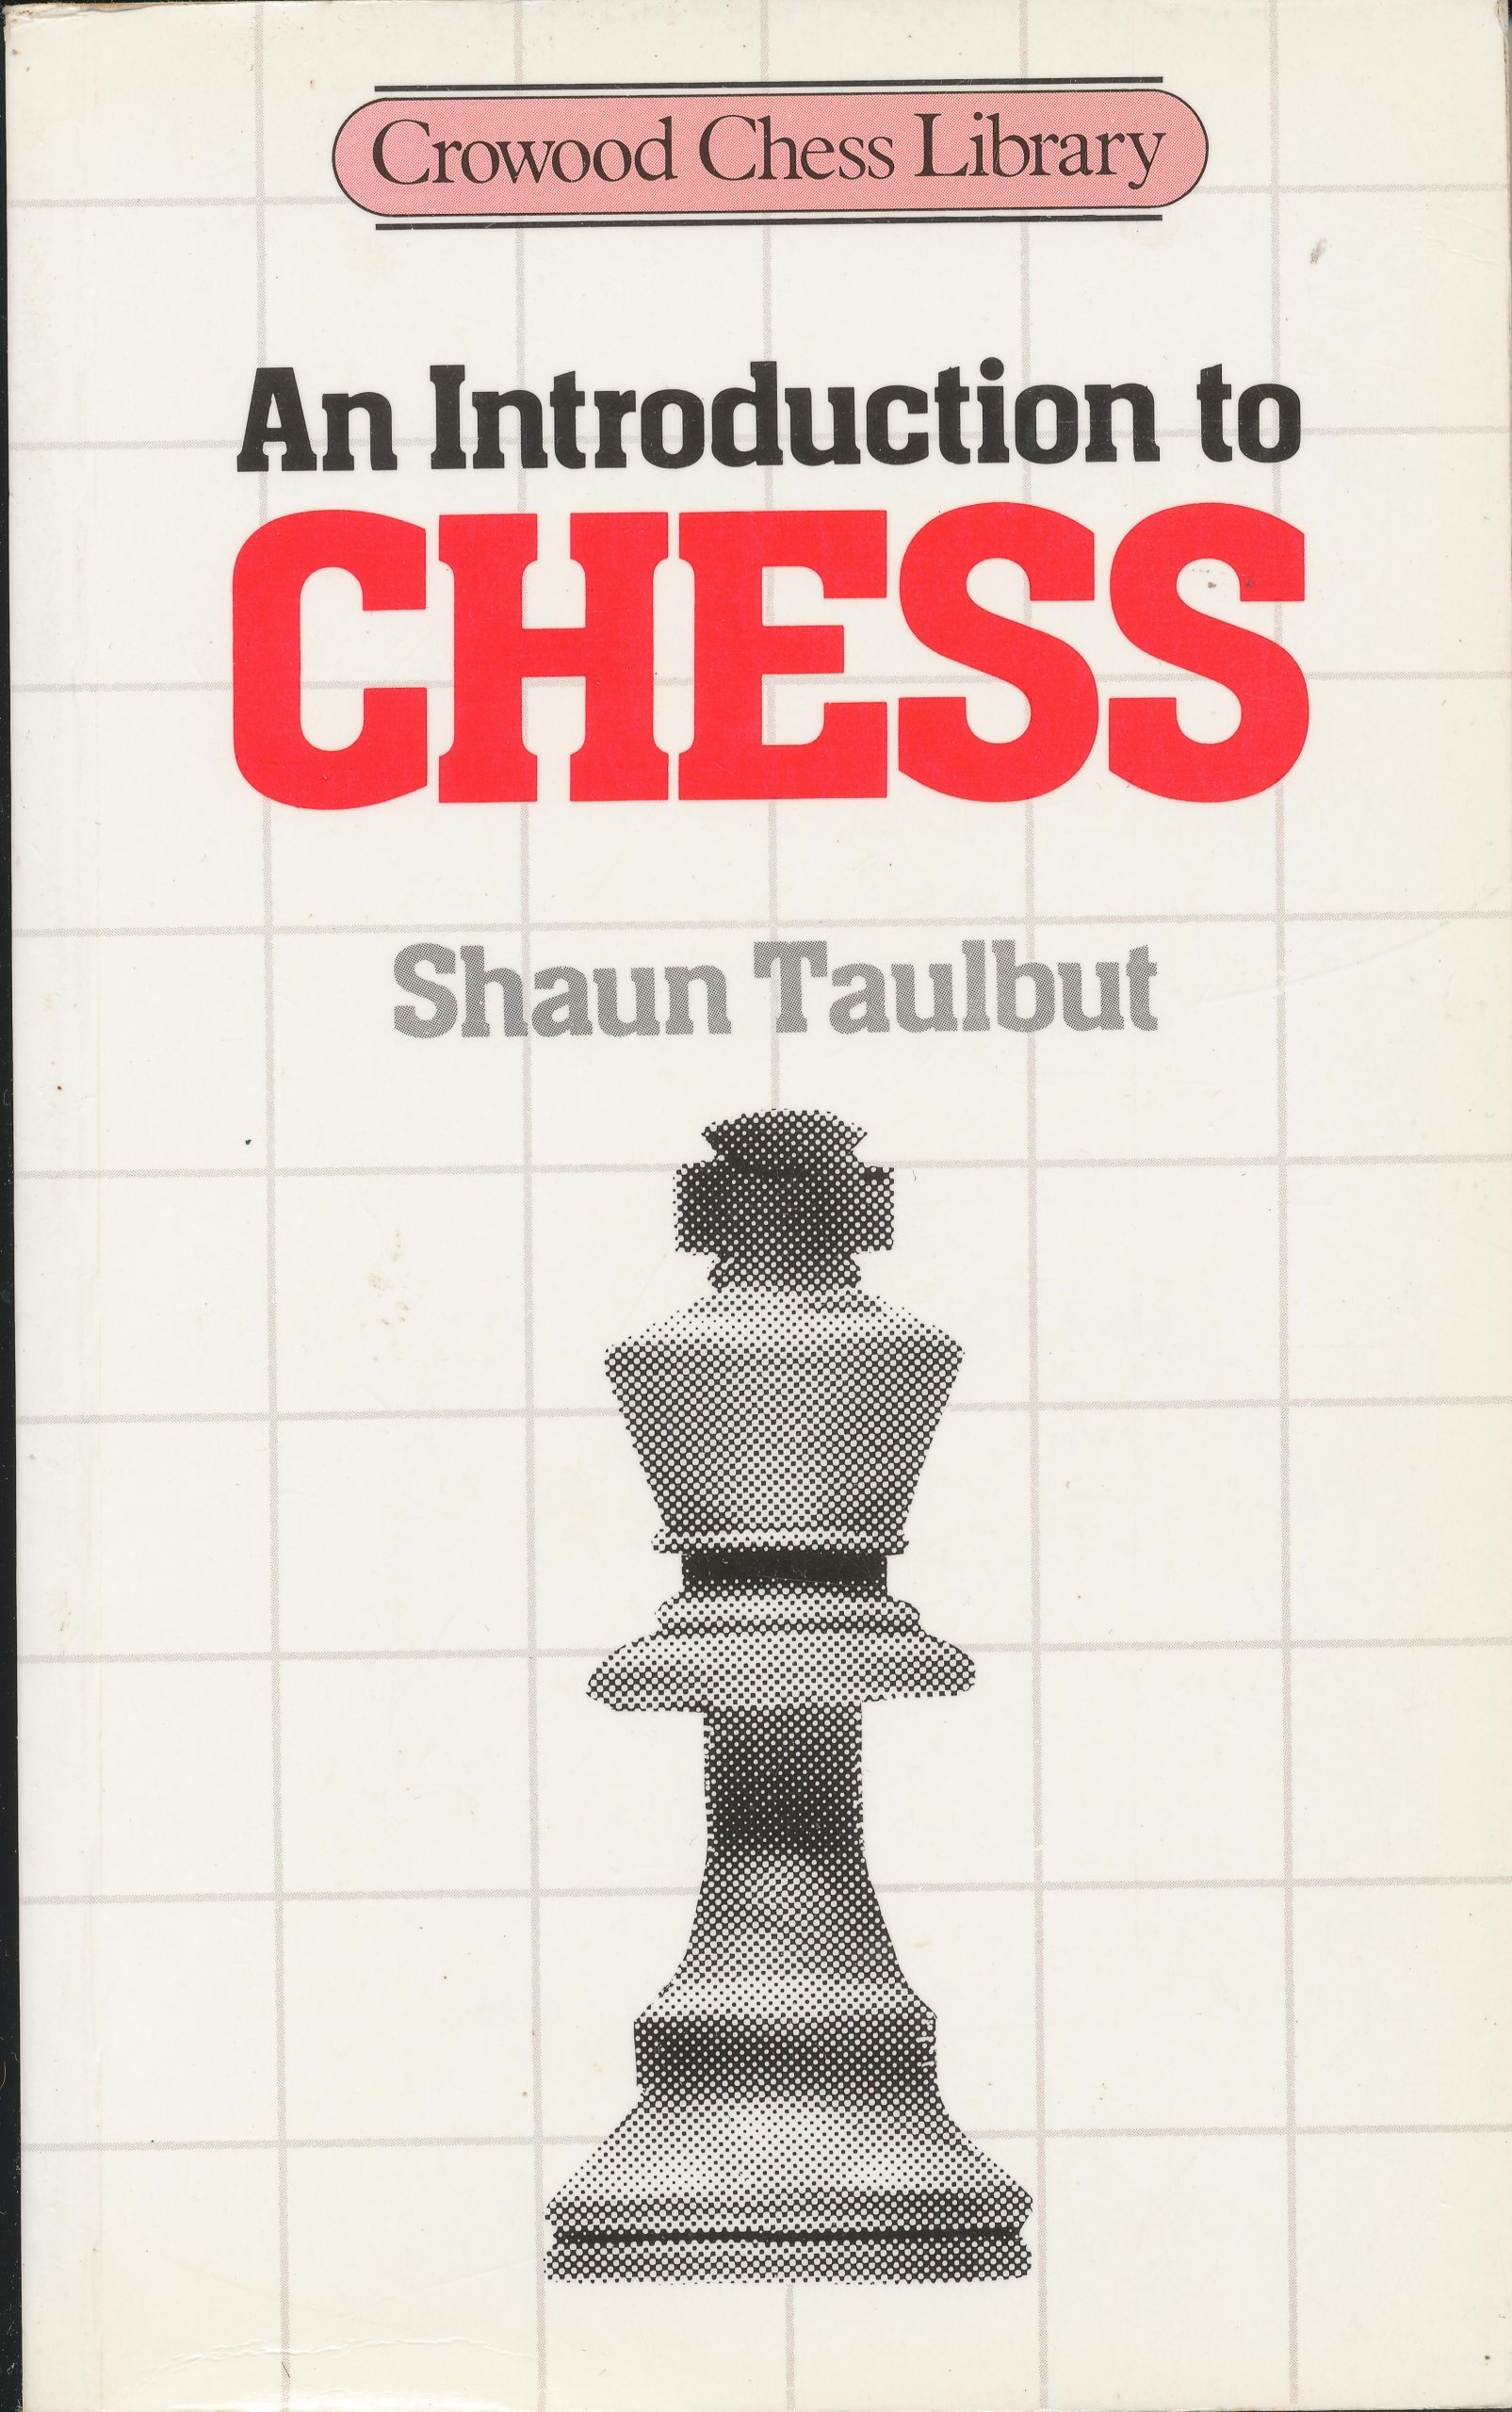 An Introduction to CHESS, Shaun Taulbut, Crowood Chess Library, 1984, ISBN 0 946284 85 7